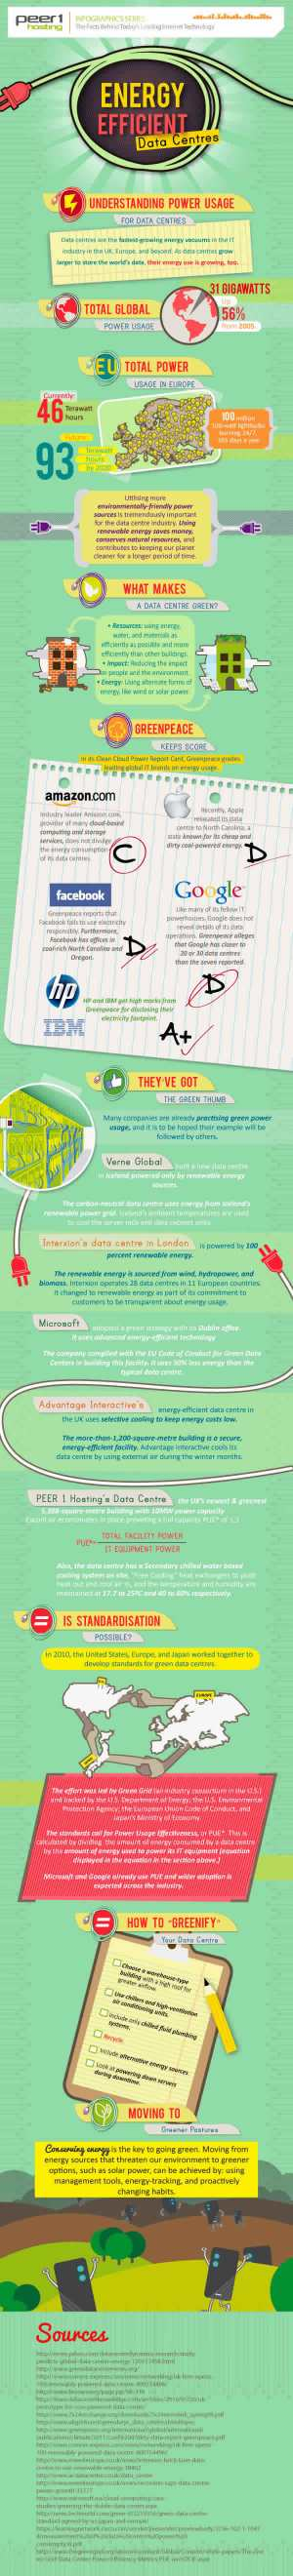 infographics_datacenter_energy_efficient_data_centres